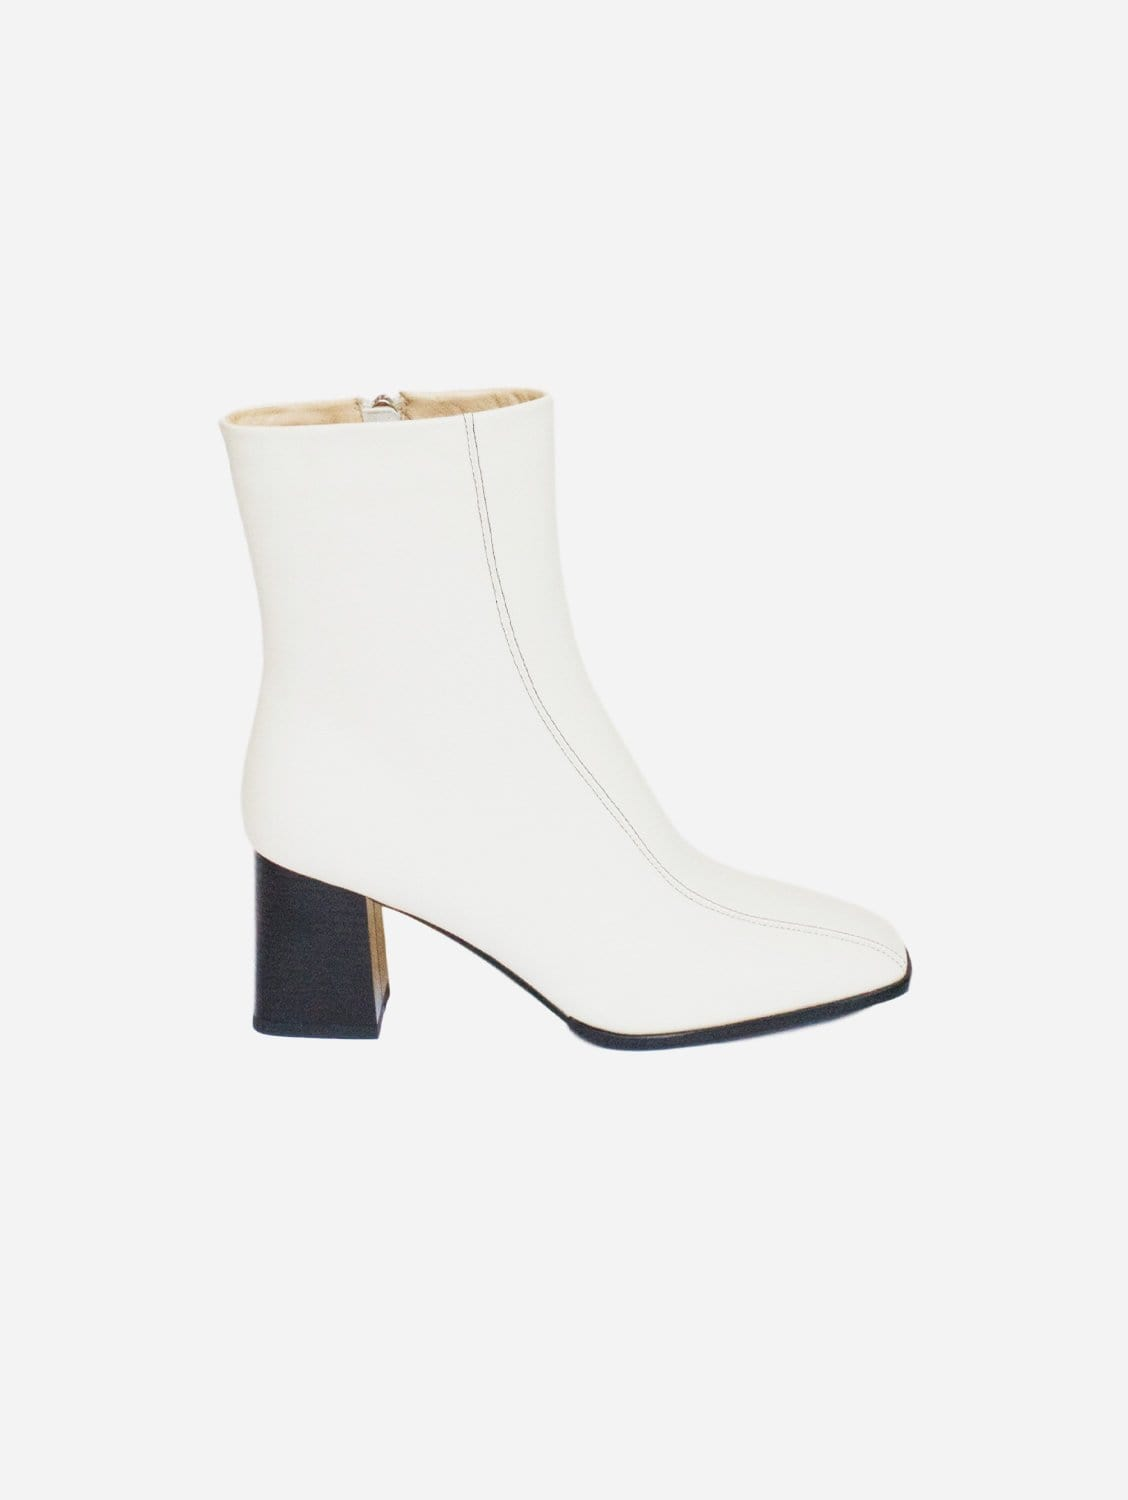 Roka Up-Cycled Vegan Leather Boot   Off-White